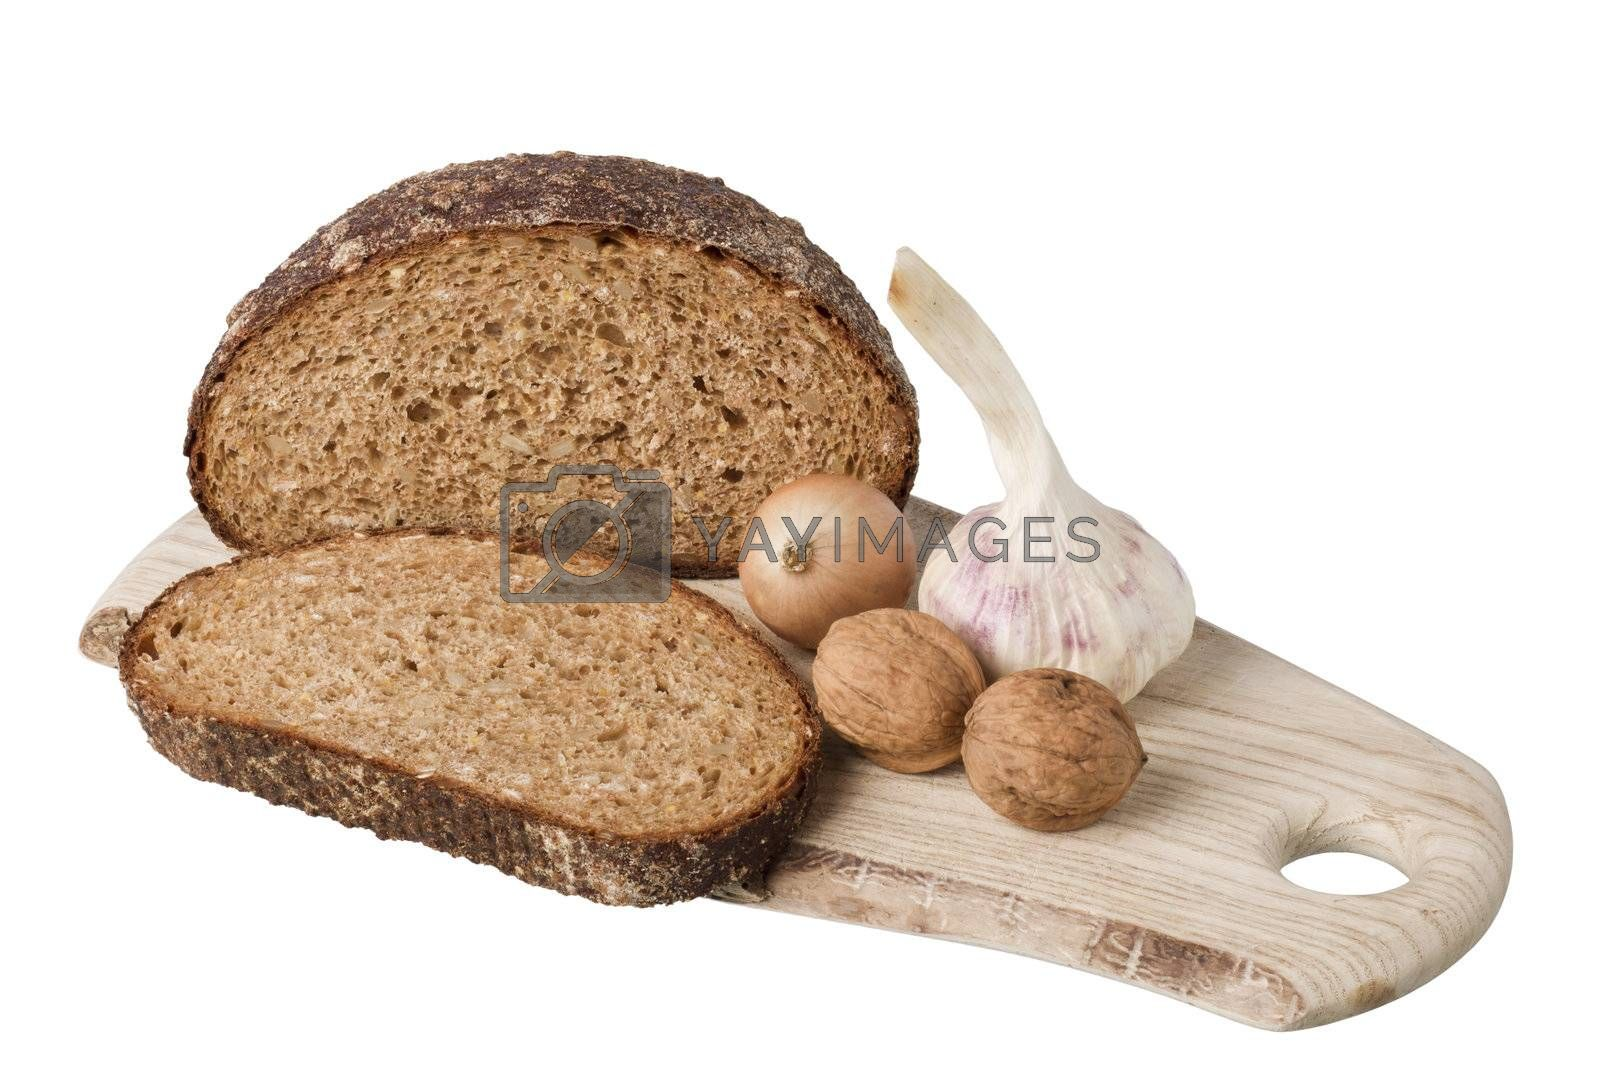 brown bread on shelf with onion, garlic and walnut  isolated on white background